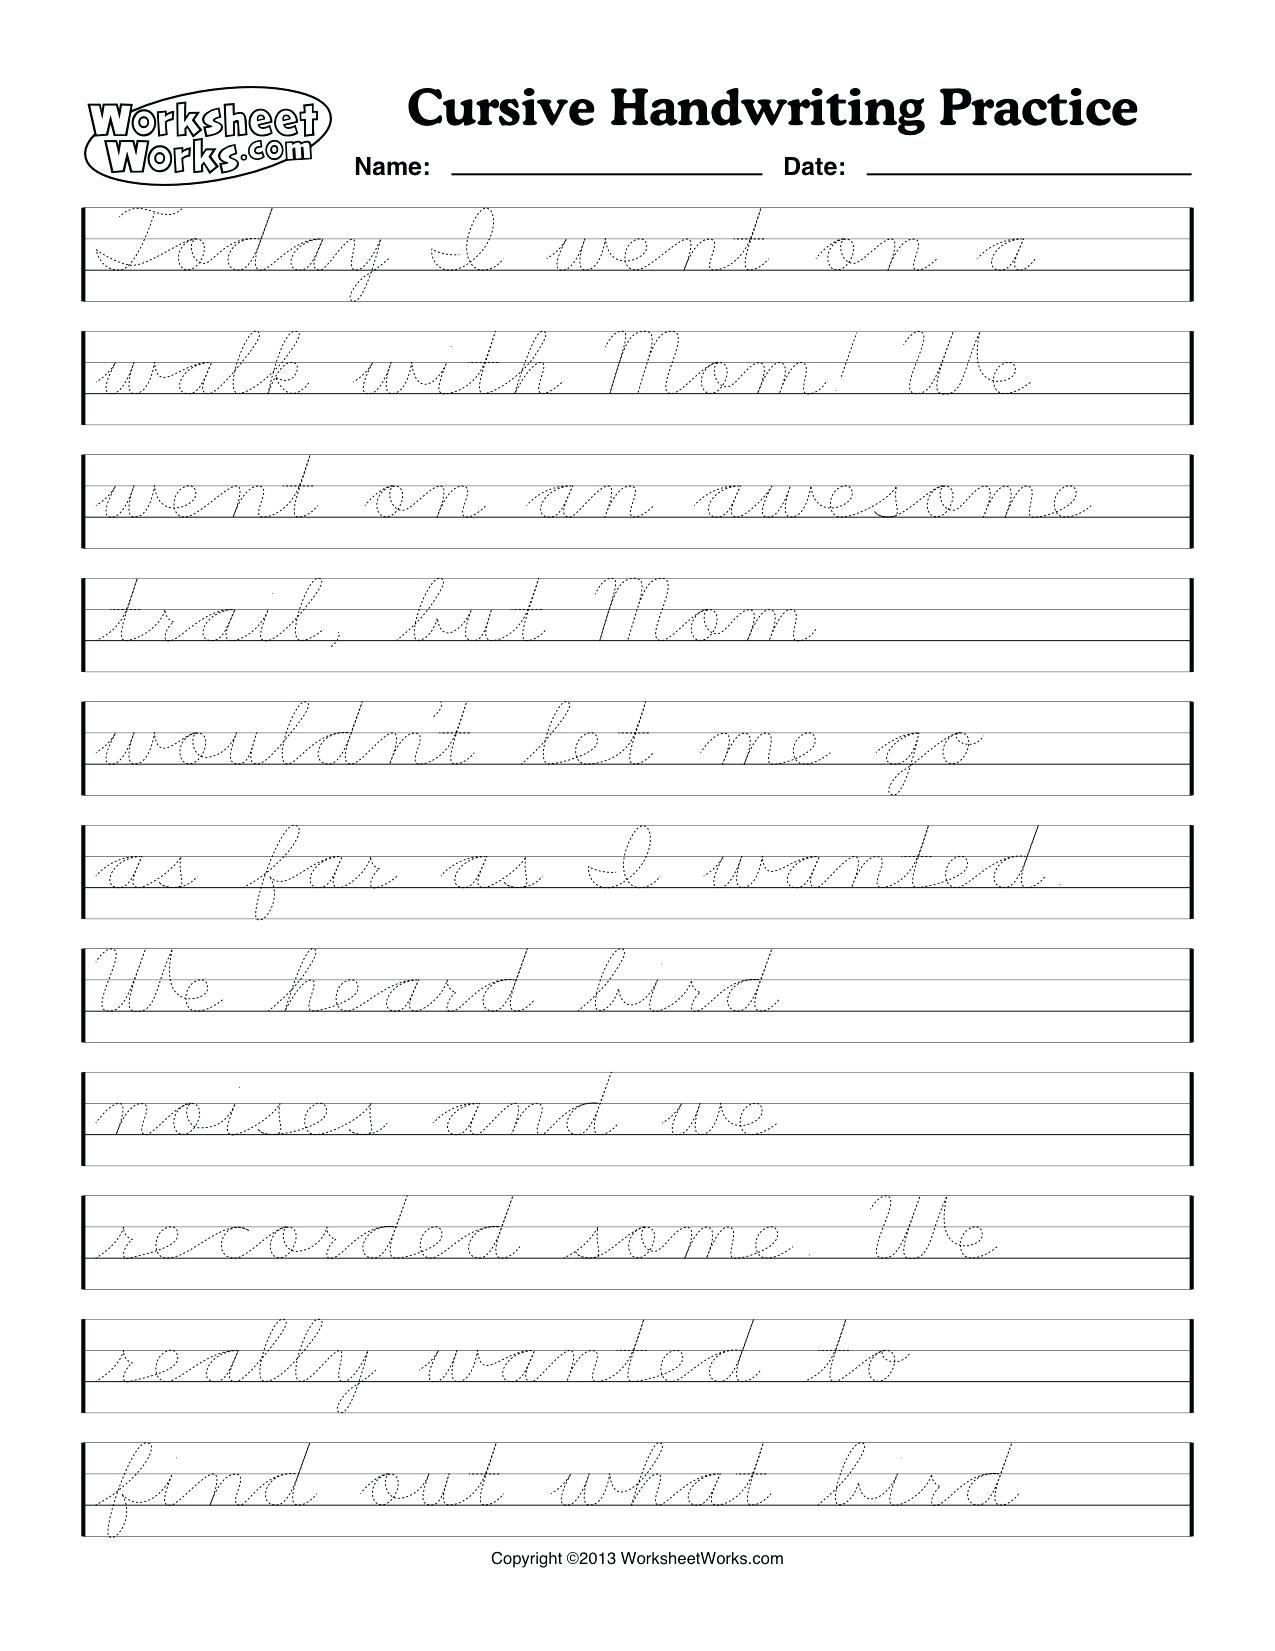 Multiplication Word Problems 4Th Grade And Cursive Writing Alphabet - Free Printable Cursive Writing Paragraphs